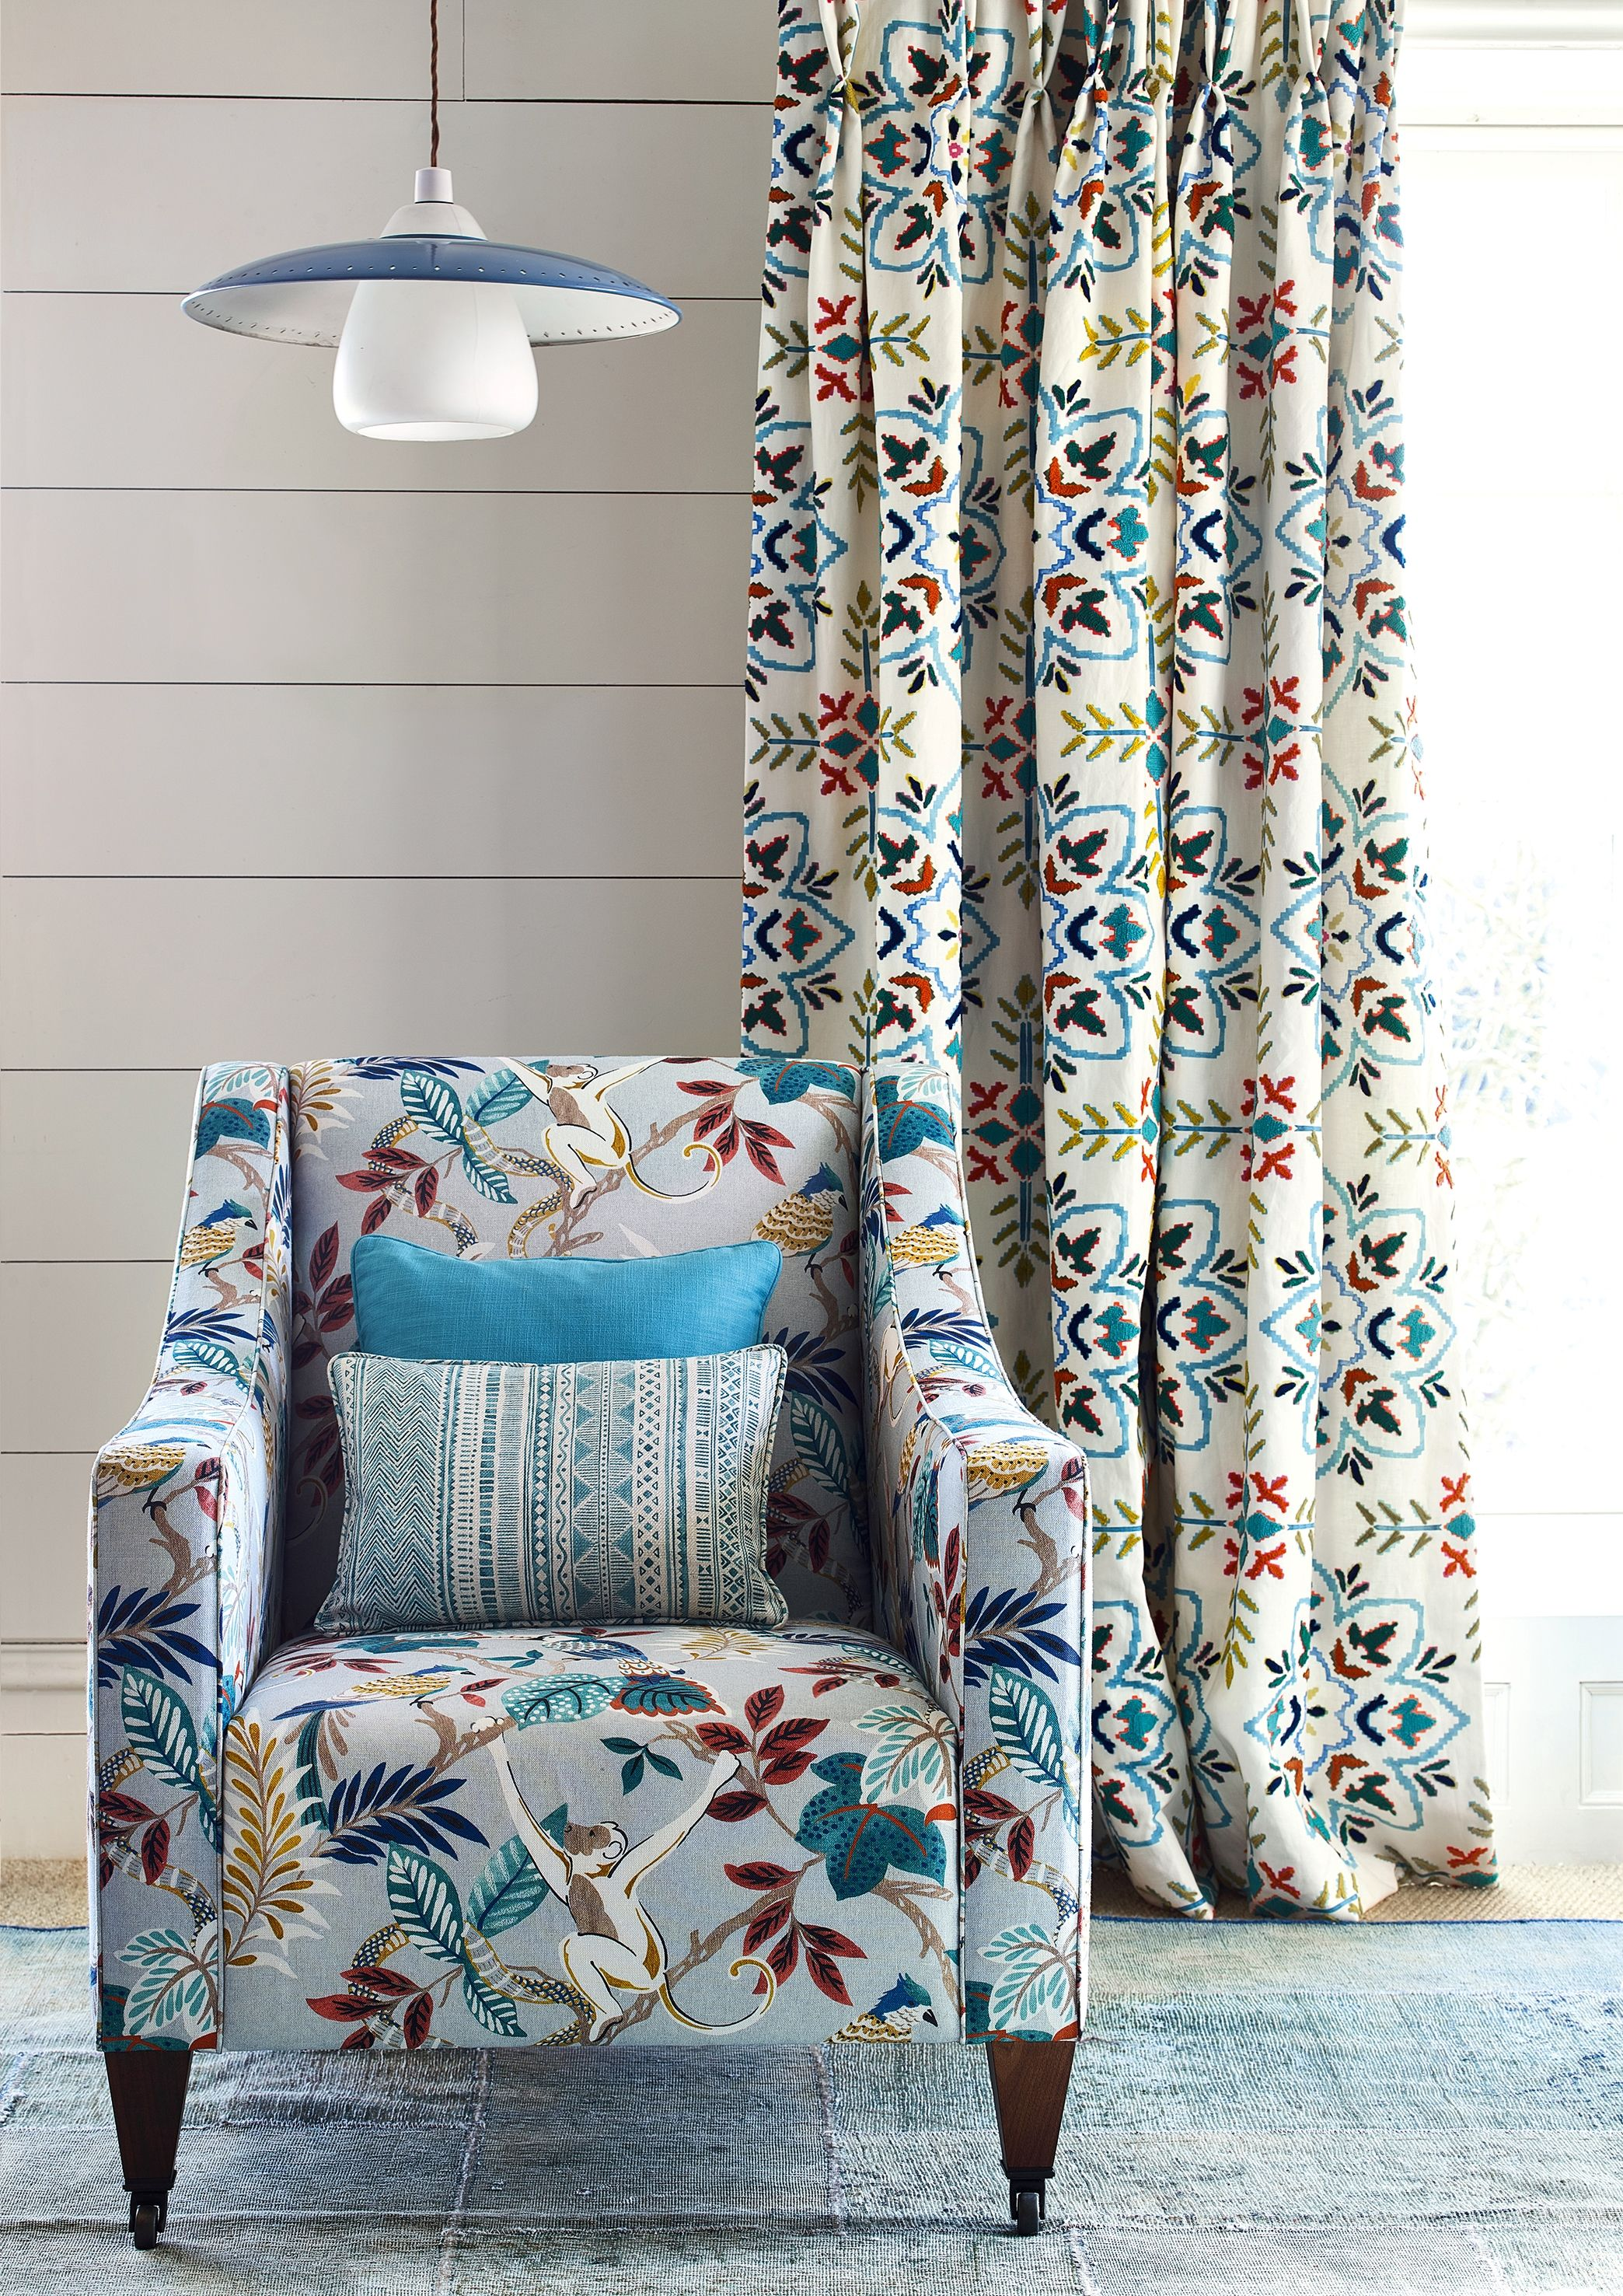 The Indira Collection By Jane Churchill Soft Furnishings House Styles Interior Trend